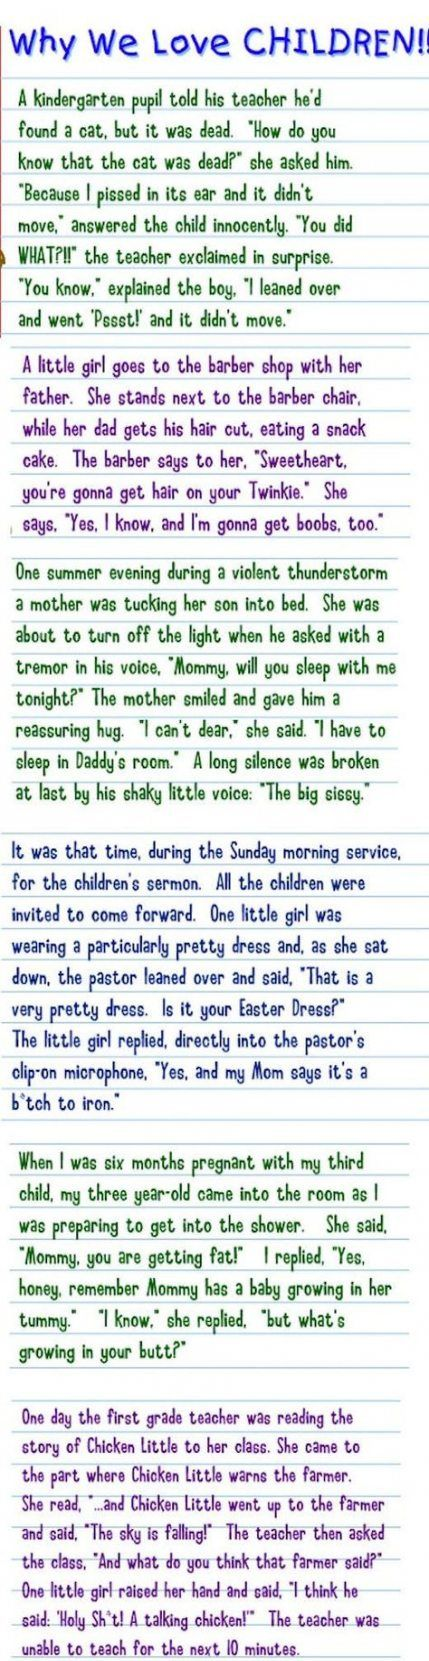 New Quotes Funny Kids Smile Ideas Funny Quotes For Kids Fun Quotes Funny Funny Jokes For Kids